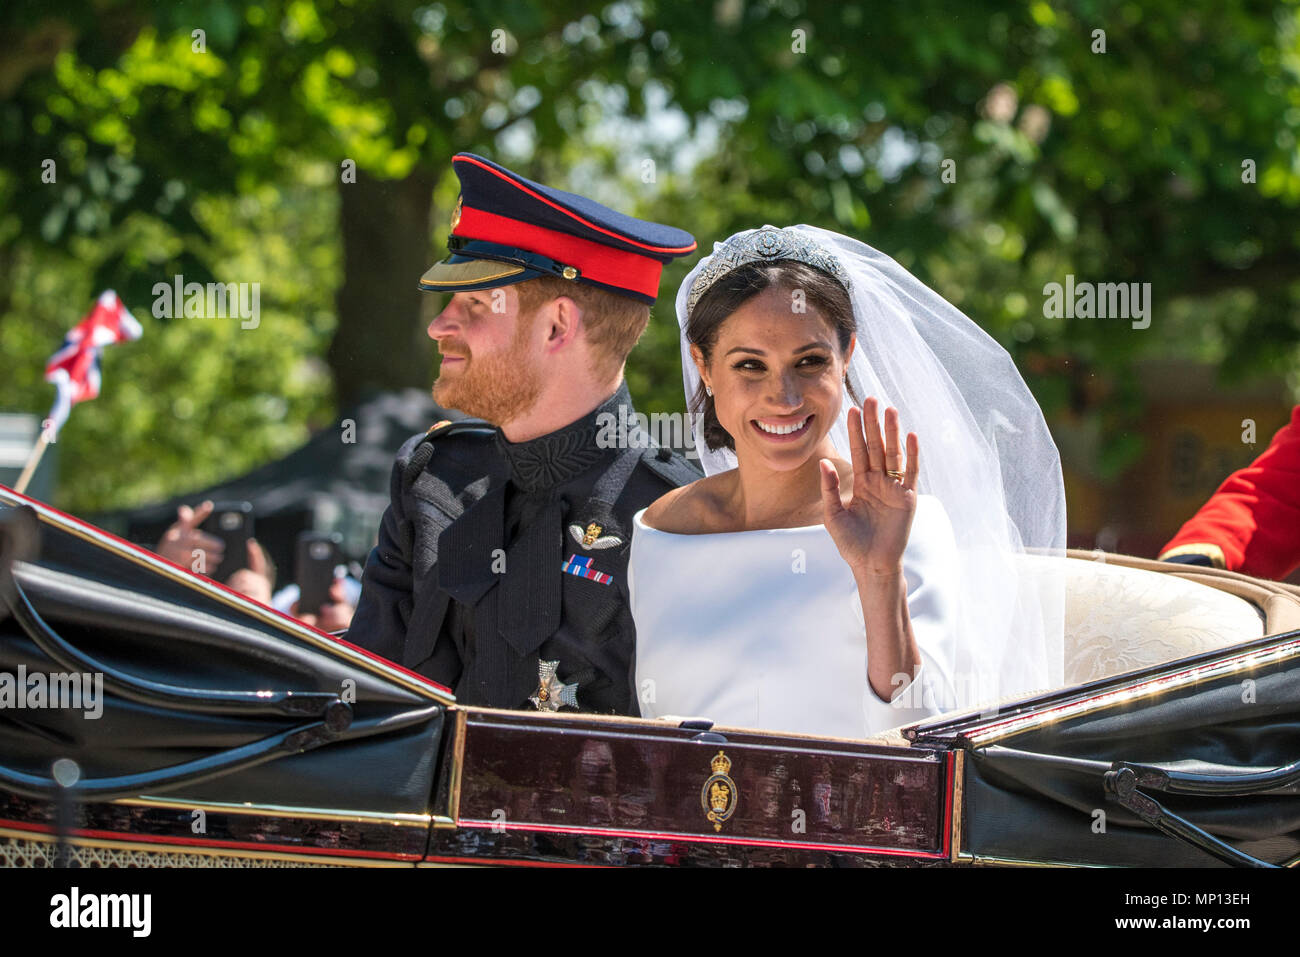 2c5bf8b48da9 19 May 2018 - TRH The Duke and Duchess of Sussex partake in their first  joint carriage ride around Windsor immediately after their royal wedding in  Windsor ...